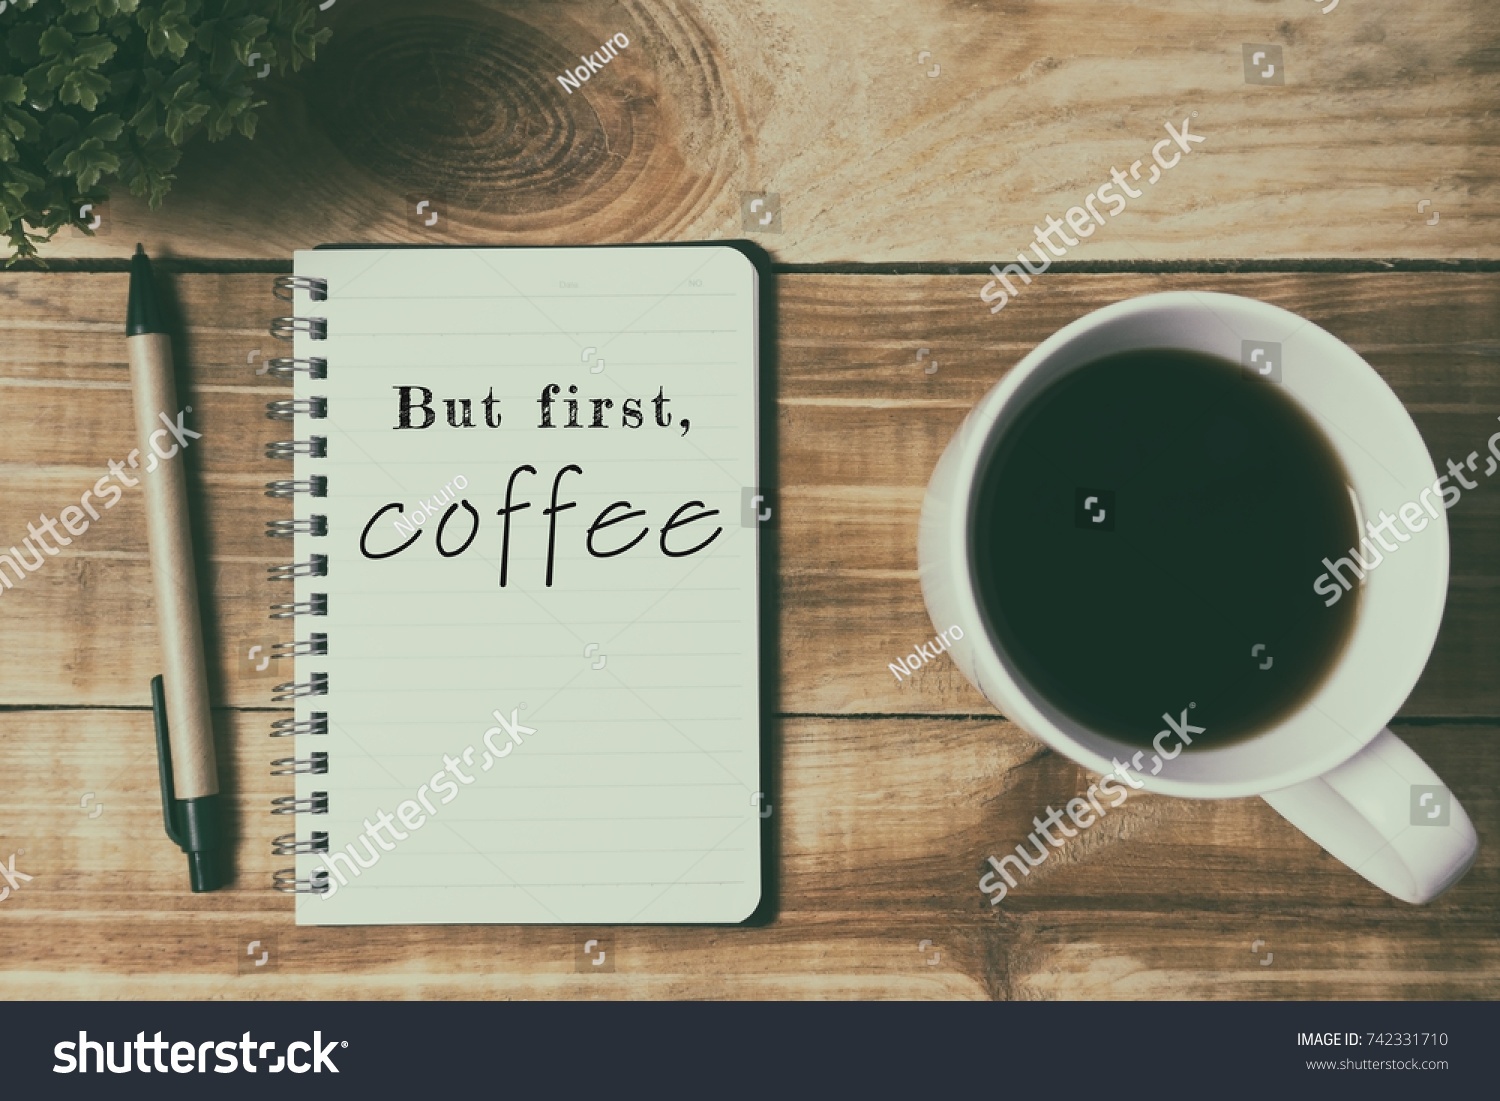 Coffee Culture Inspirational Quotes   But First, Coffee. Retro Style  Background.